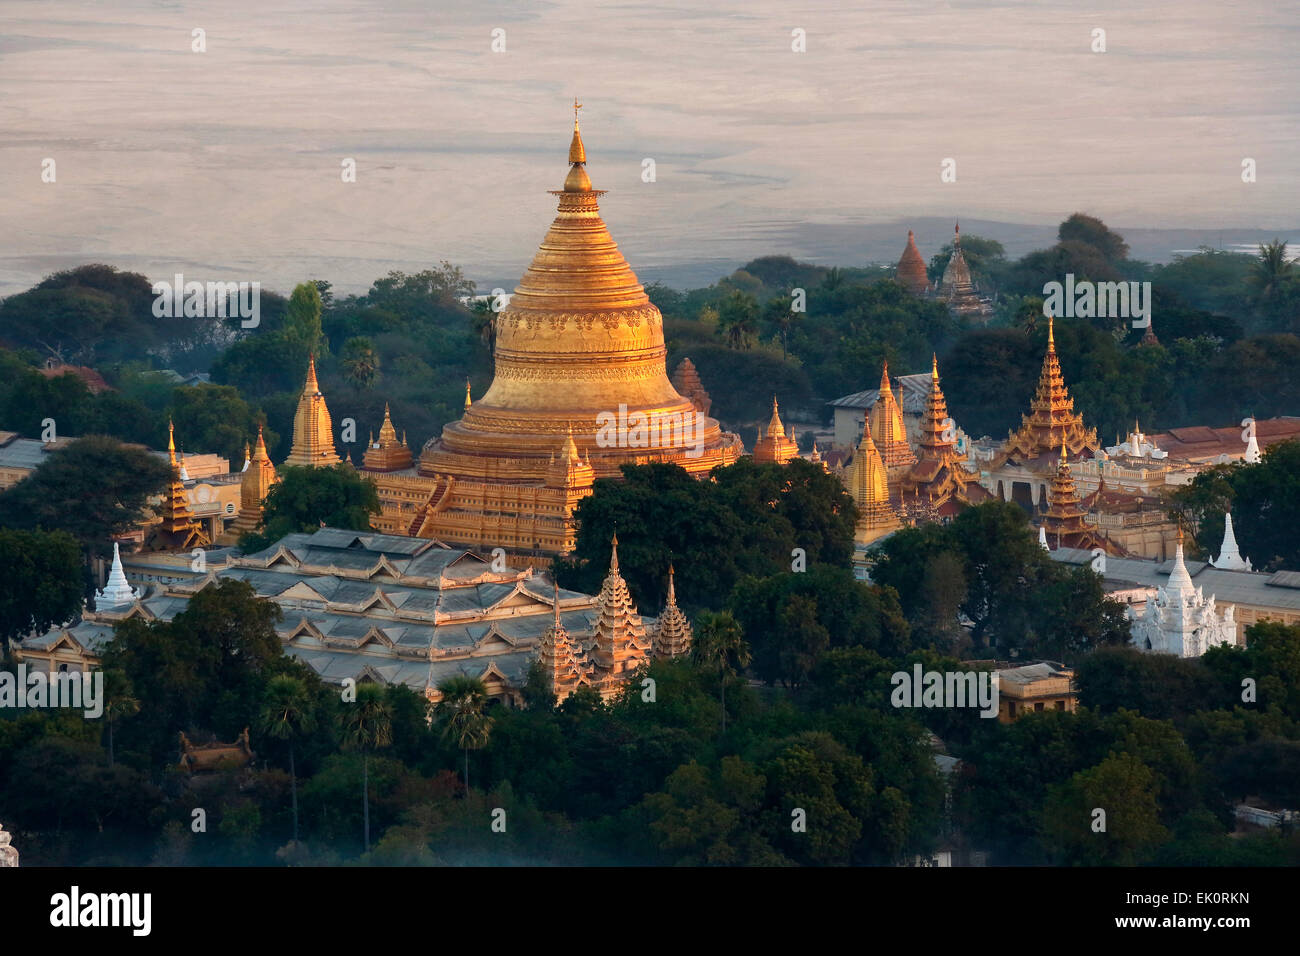 Early morning aerial view of the Shwezigon Pagoda near the Irrawaddy River in Bagan in Myanmar (Burma). Stock Photo